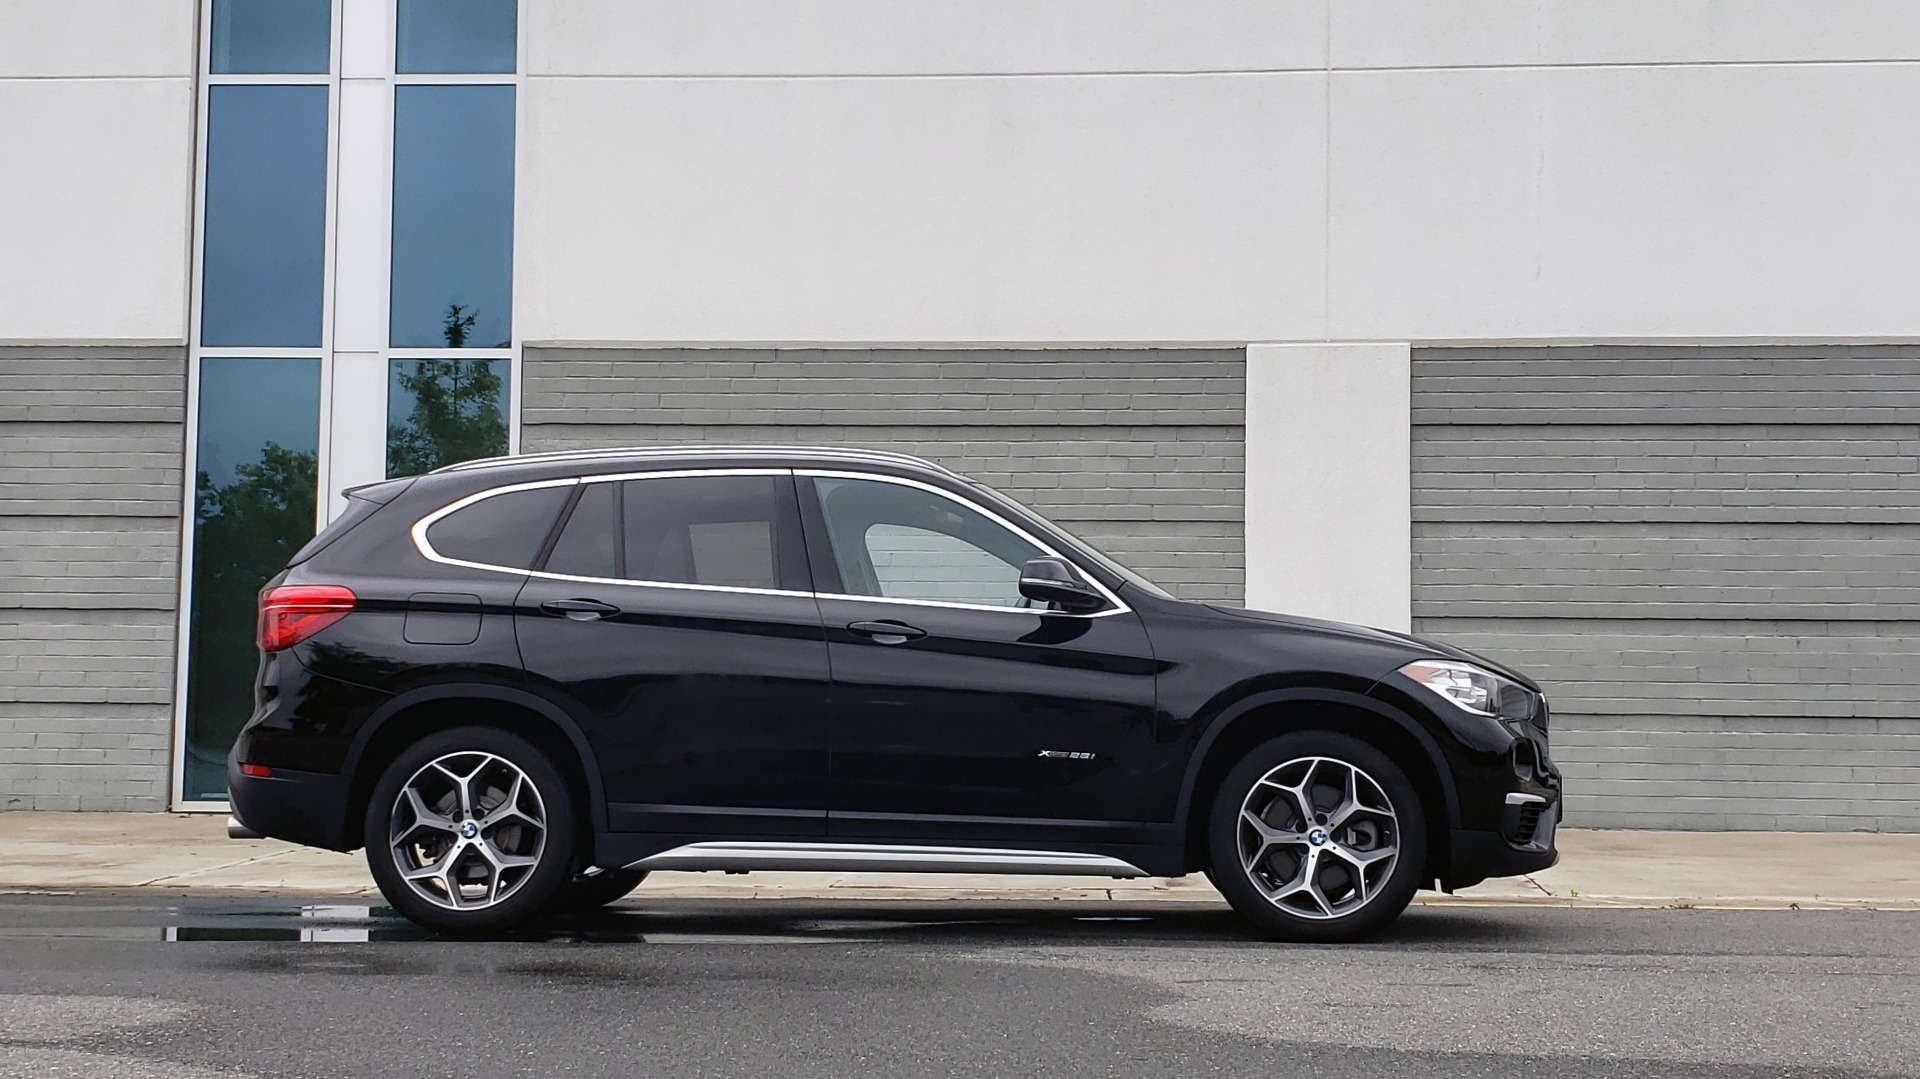 Used 2018 BMW X1 XDRIVE28I / CONV PKG / NAV / HTD STS / PANO-ROOF / REARVIEW for sale $30,995 at Formula Imports in Charlotte NC 28227 9